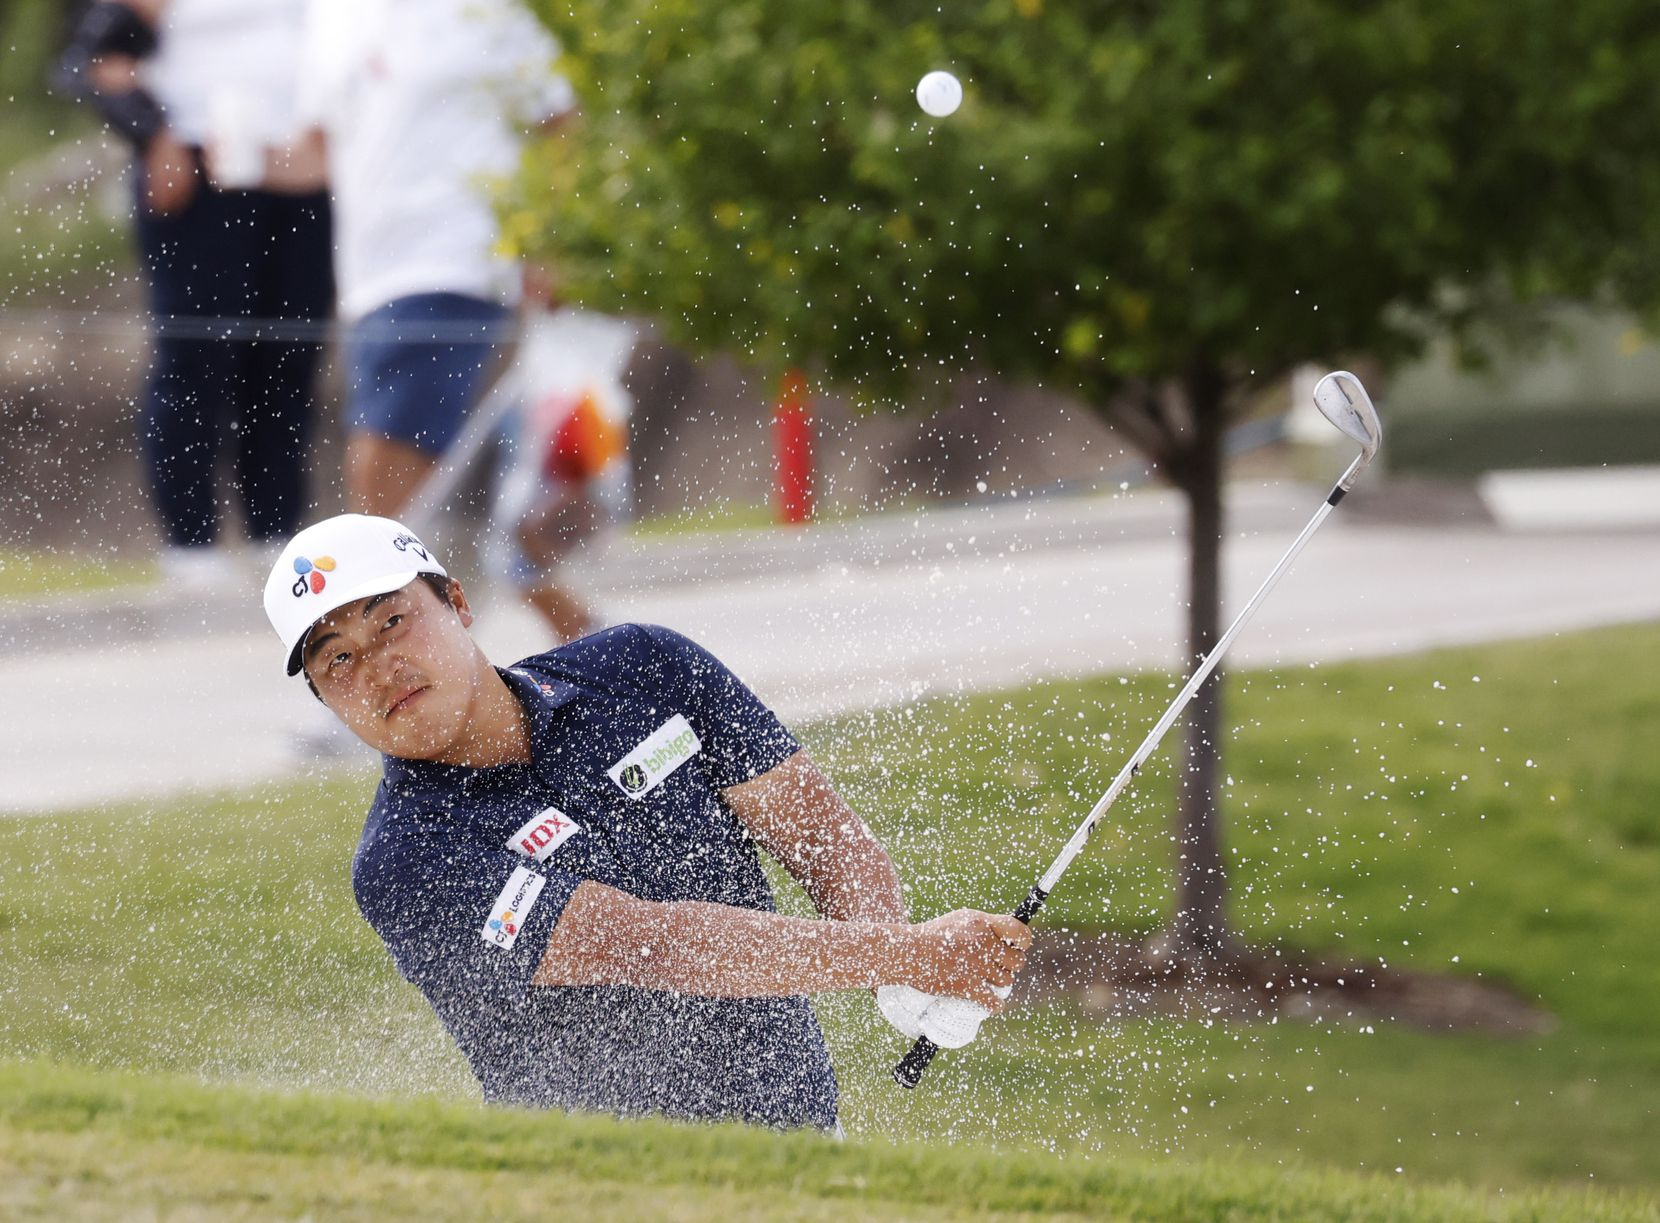 Kyoung-Hoon Lee hits out of a bunker on the 18th hole during round 3 of the AT&T Byron Nelson  at TPC Craig Ranch on Saturday, May 15, 2021 in McKinney, Texas. (Vernon Bryant/The Dallas Morning News)